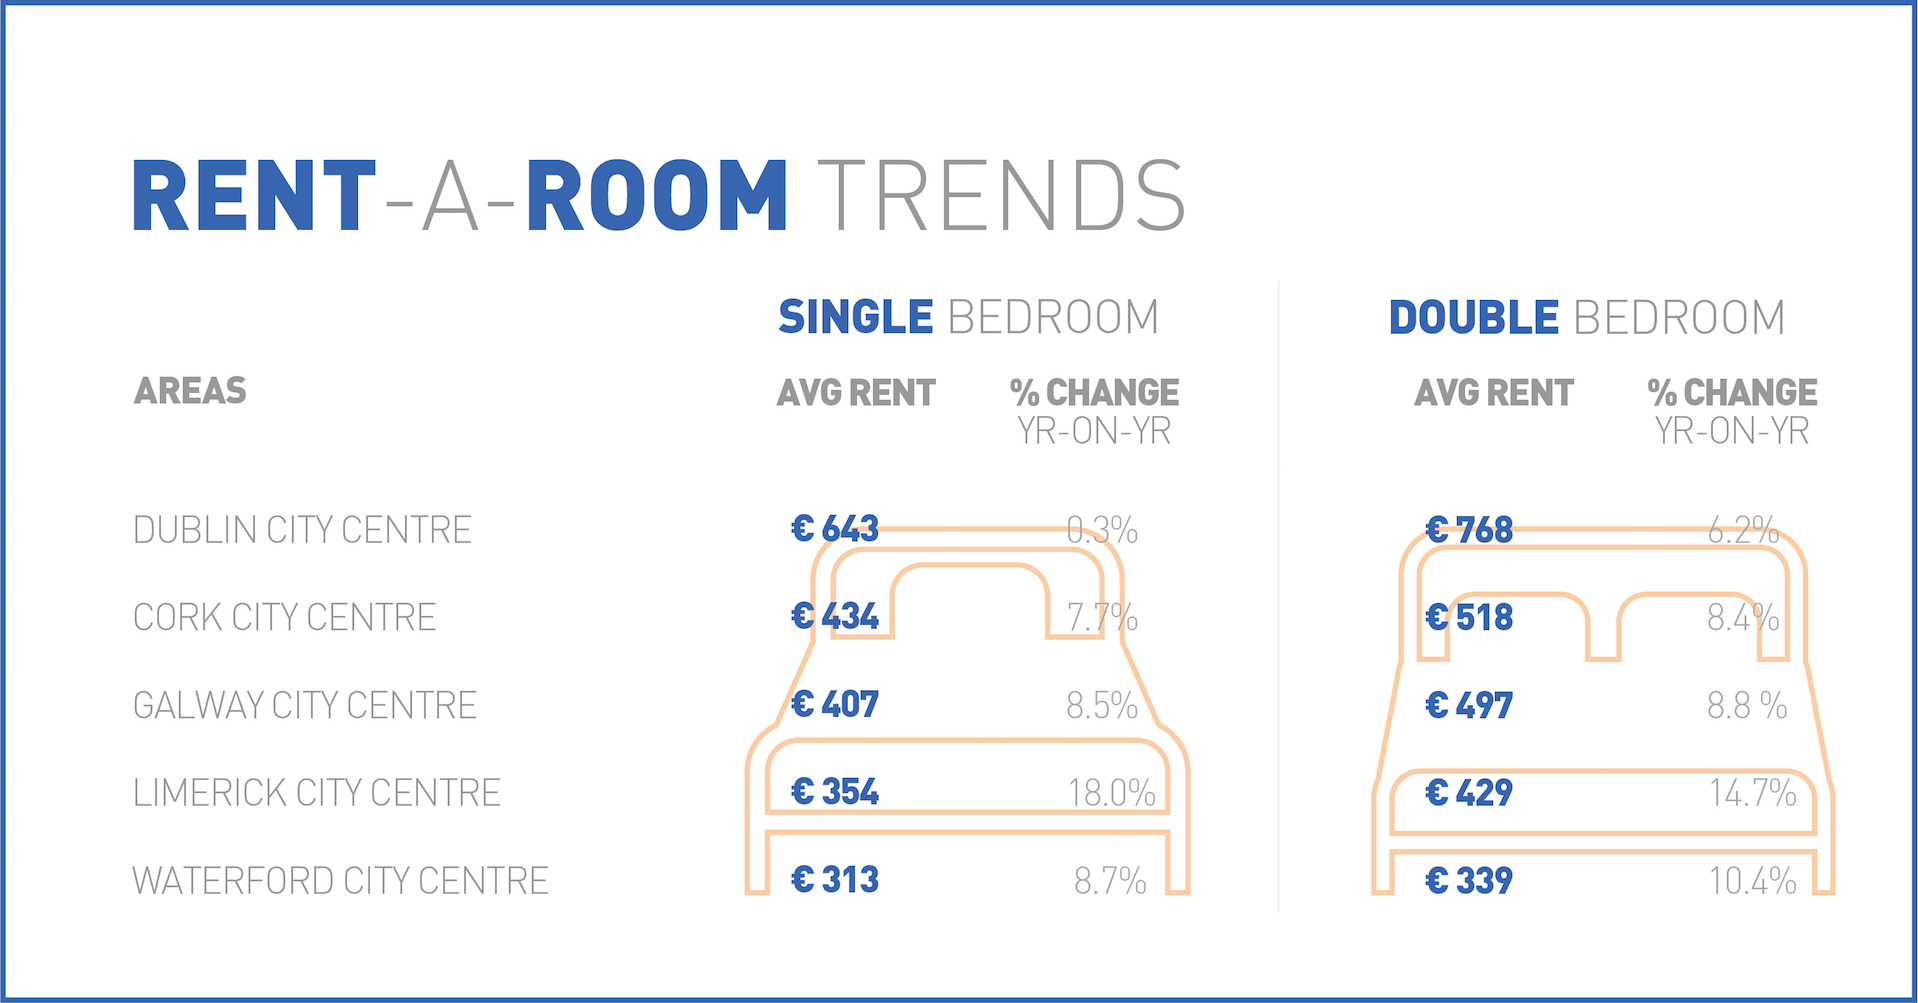 Rent a room trends - Year on year